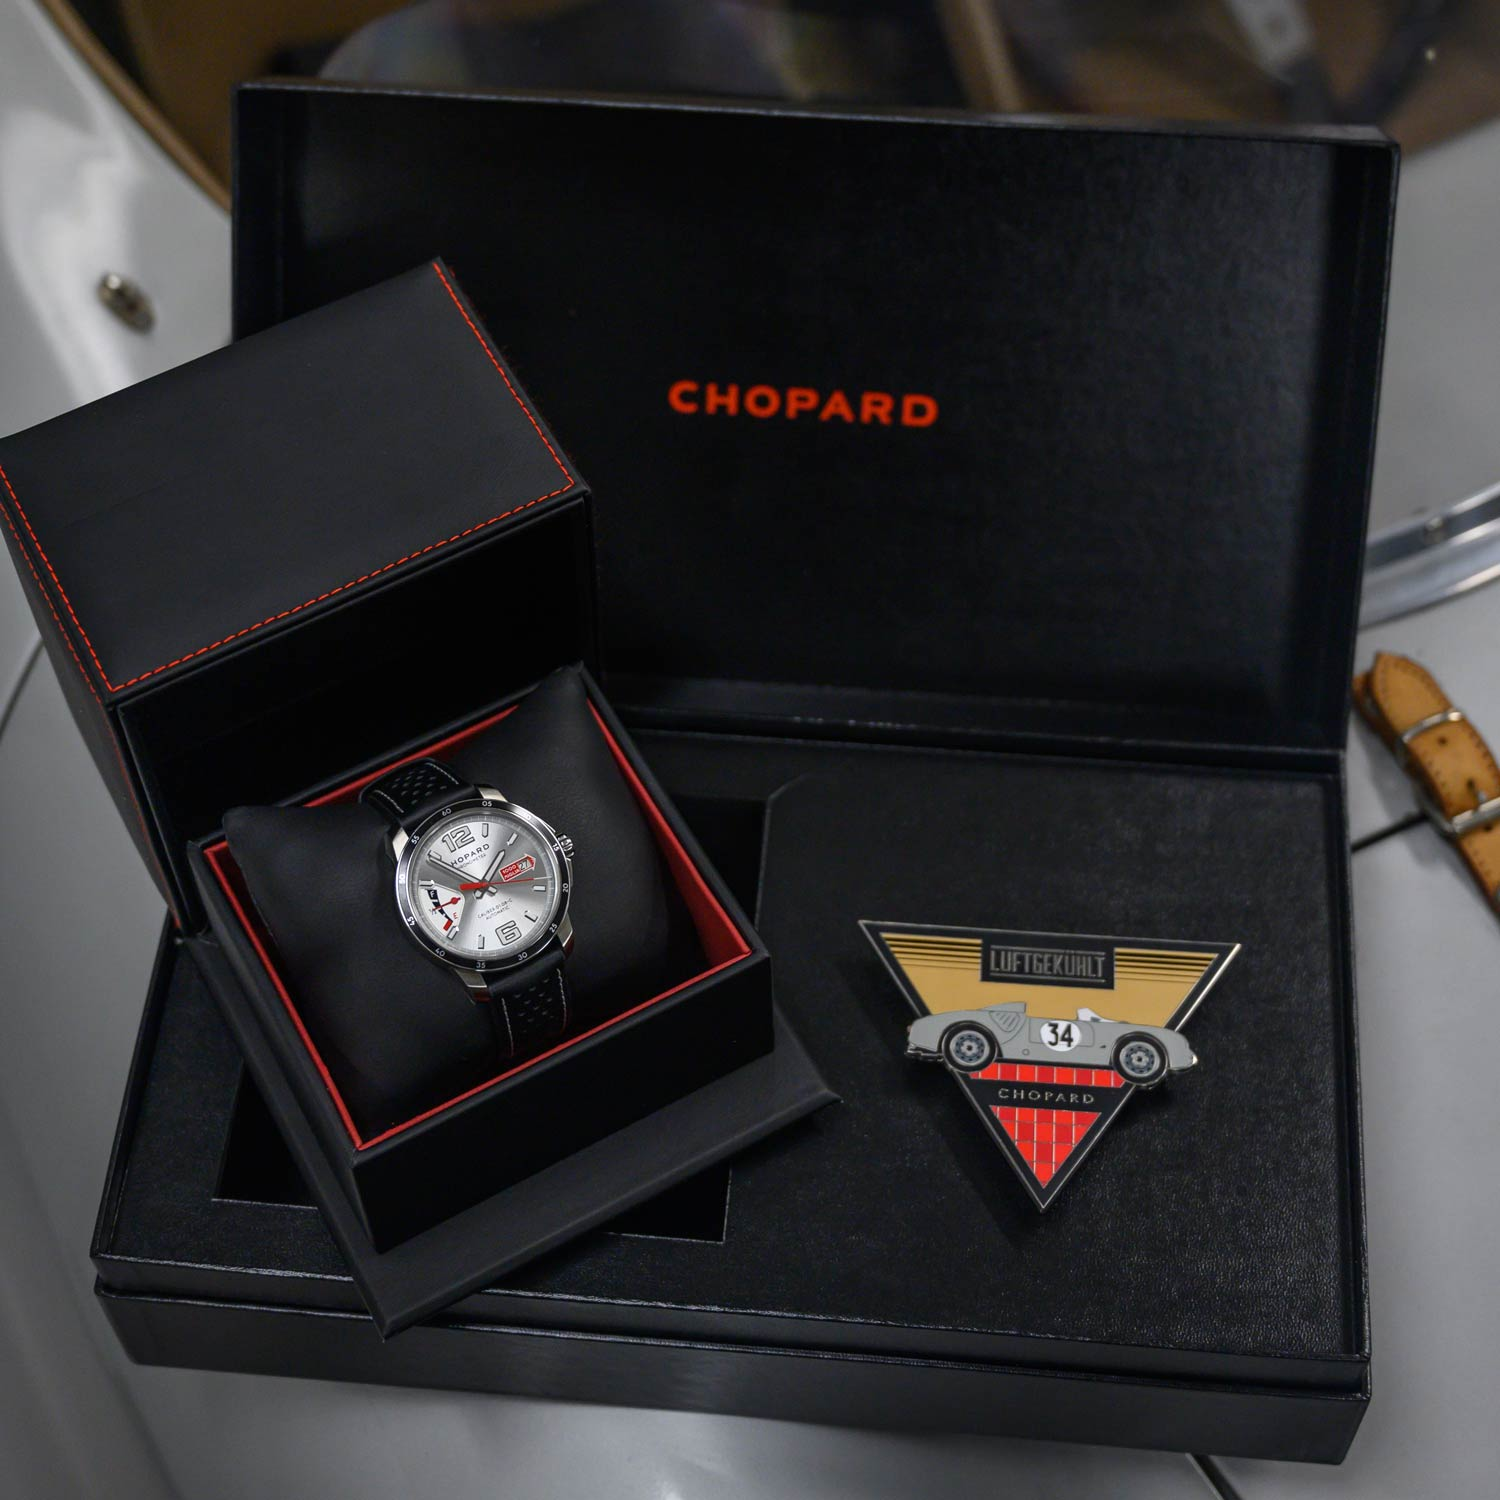 The timepiece comes in a special box featuring a grill badge designed by the Luftgekühlt team and their artists.